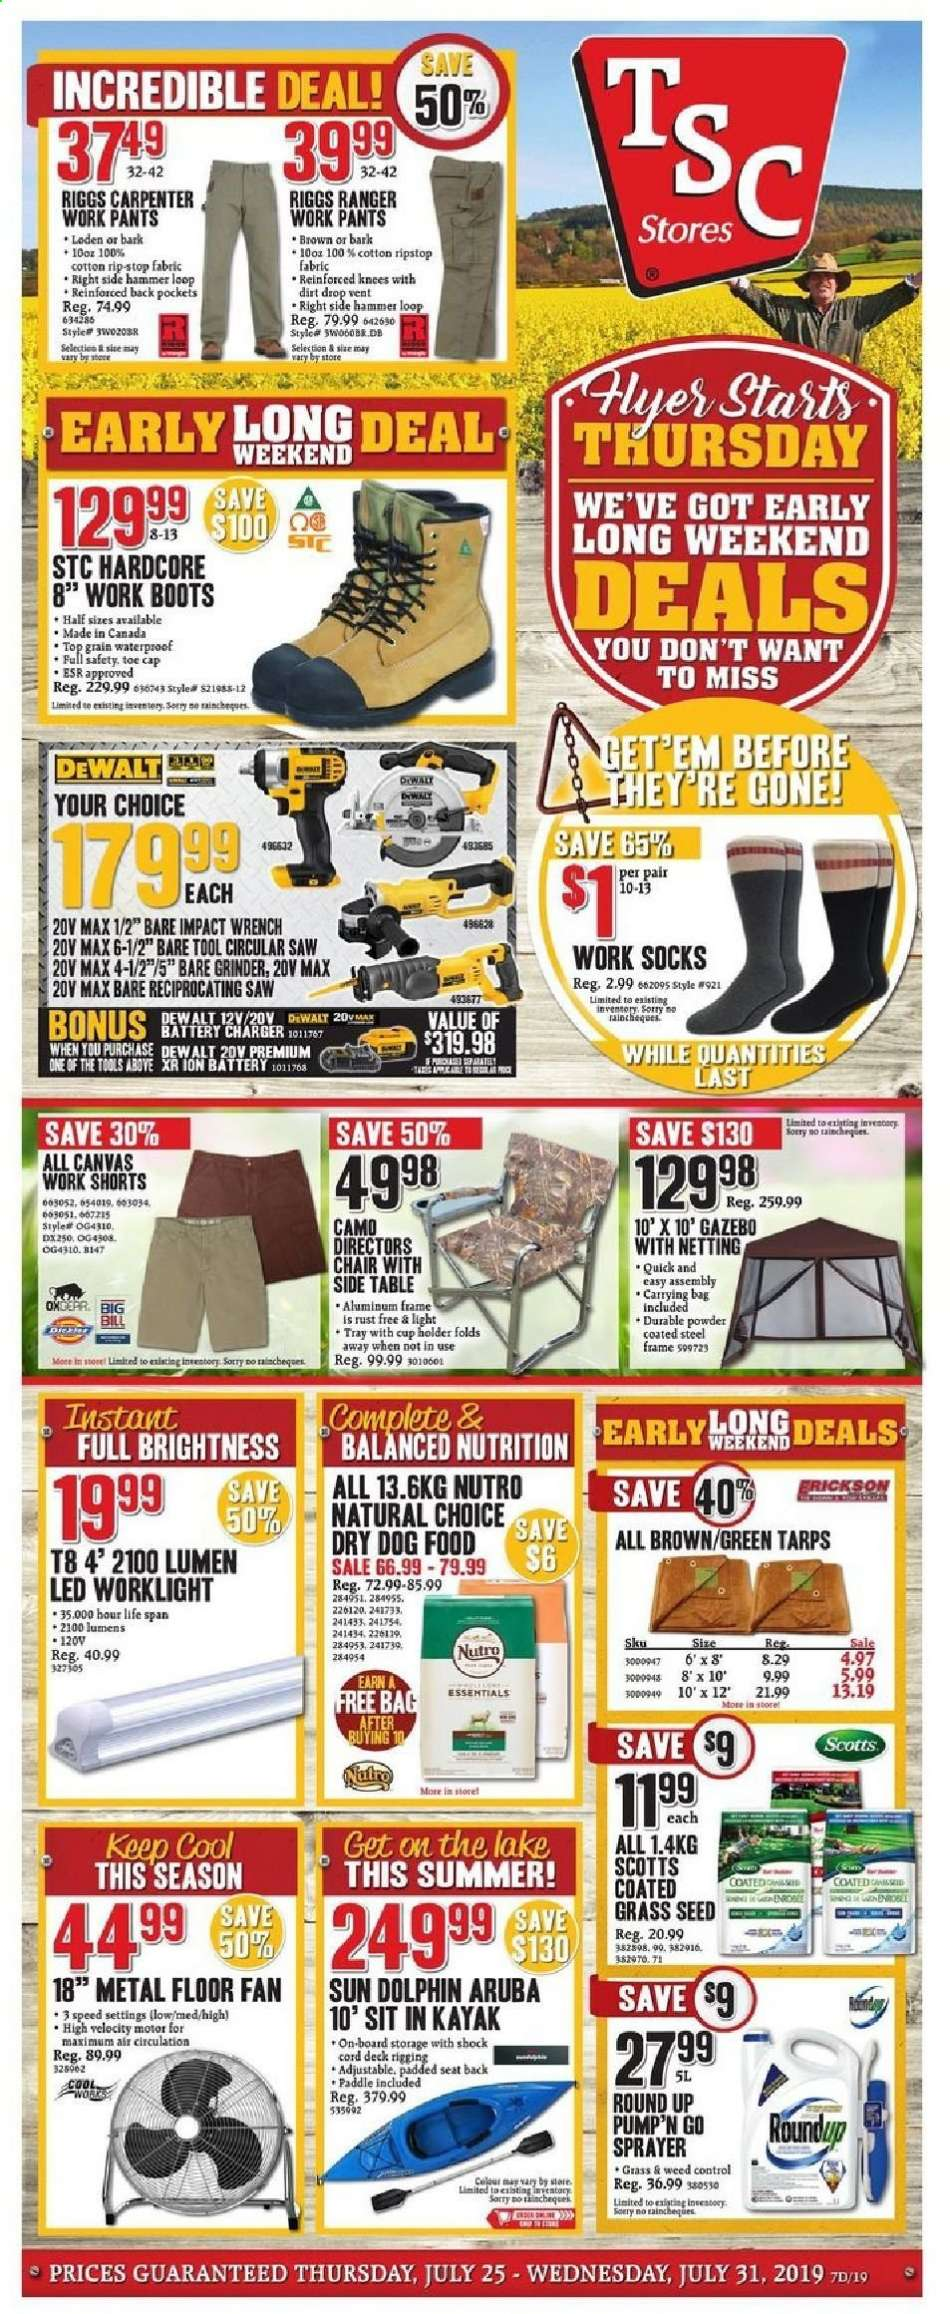 Current TSC Stores flyer July 25, 2019 - July 31, 2019 | Ca